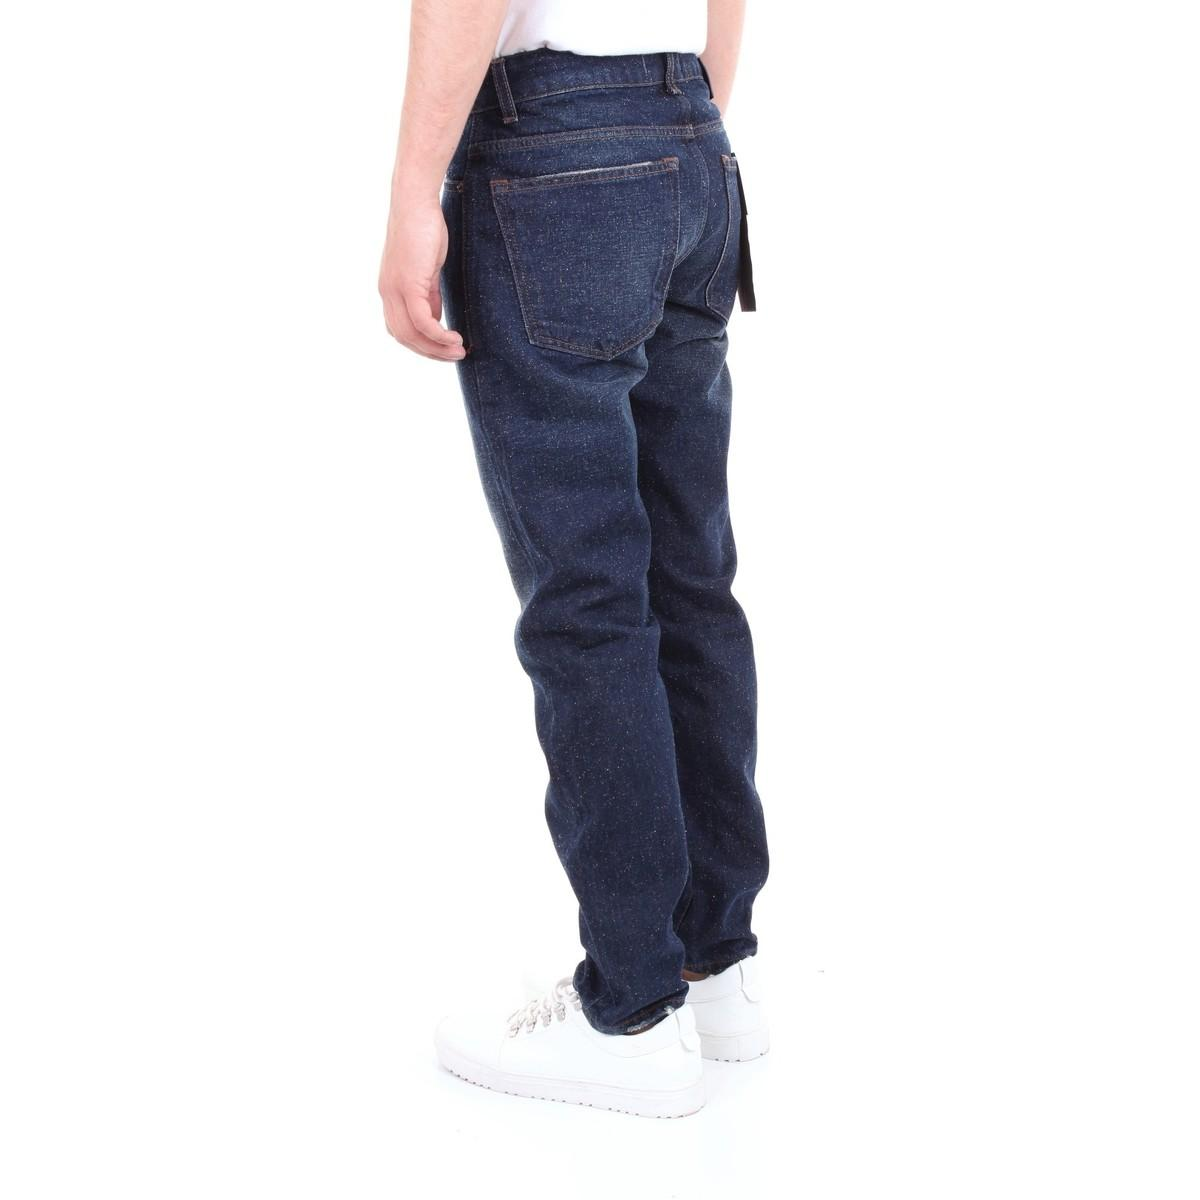 Michael Coal Denim Straight Jeans Mark1091c in het Blauw voor heren